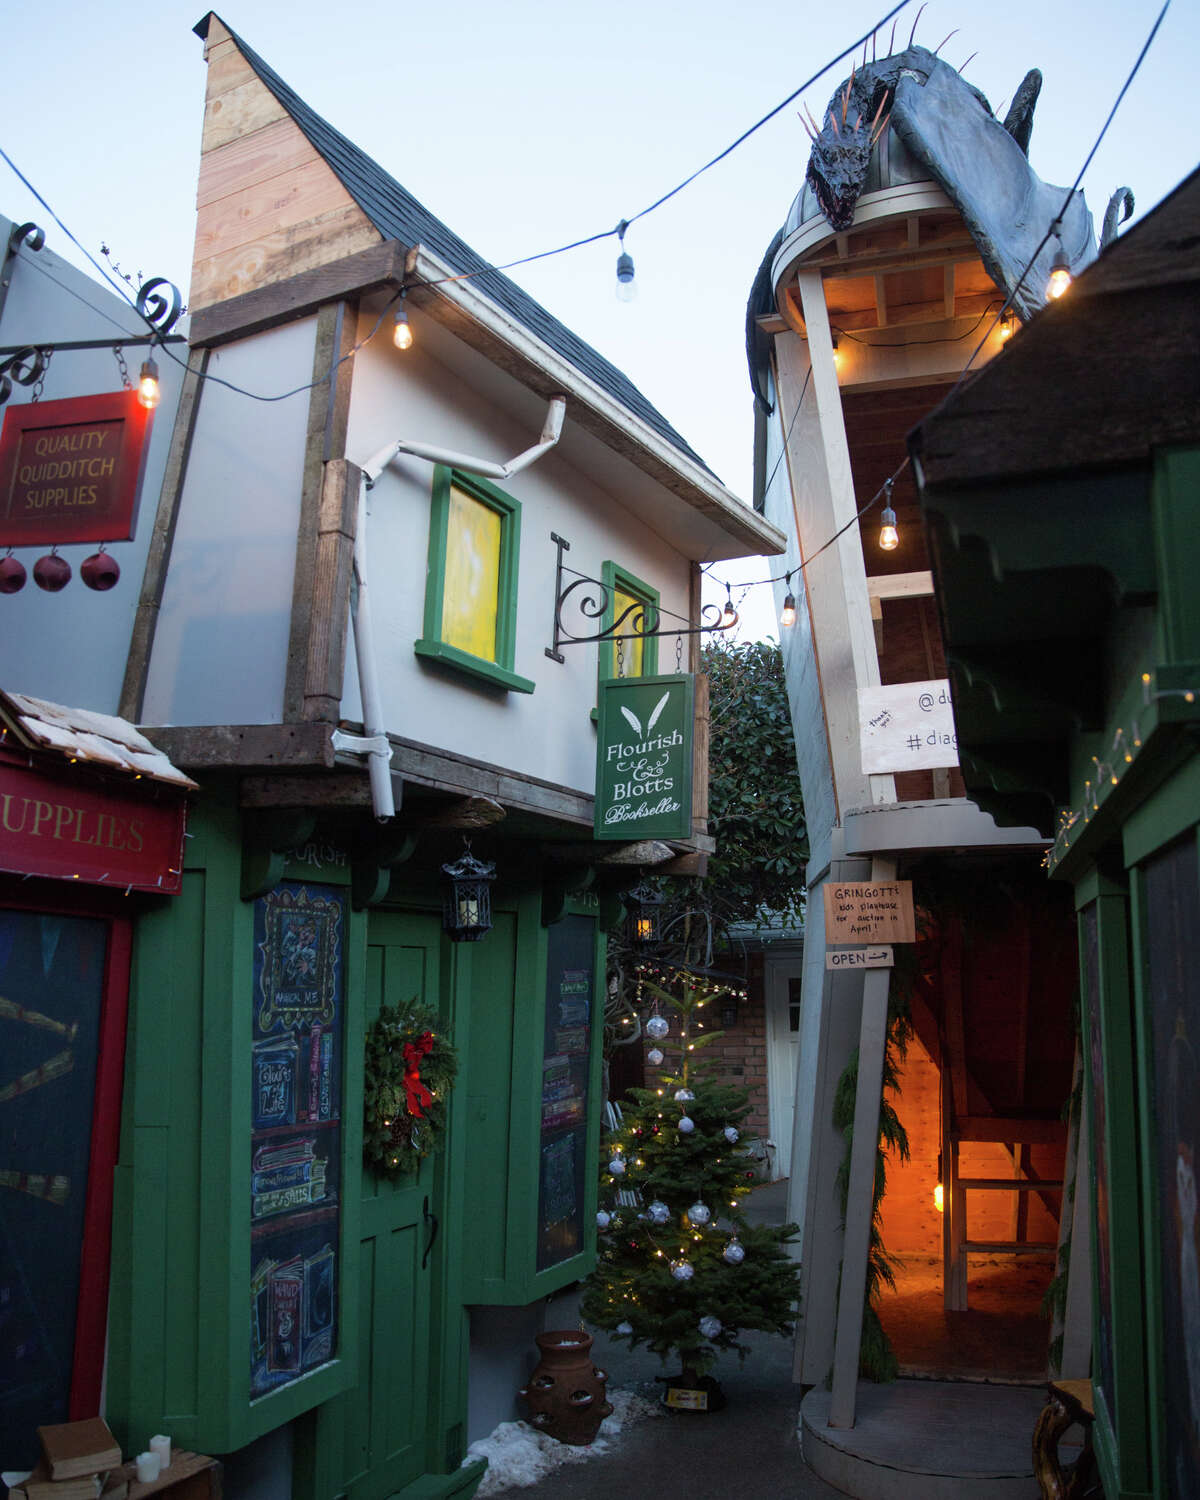 The now-famed recreation of Diagon Alley, a shopping street location from the Harry Potter books, at a home in Ballard is turned Christmas-themed, seen on Thursday, Dec. 13, 2017.